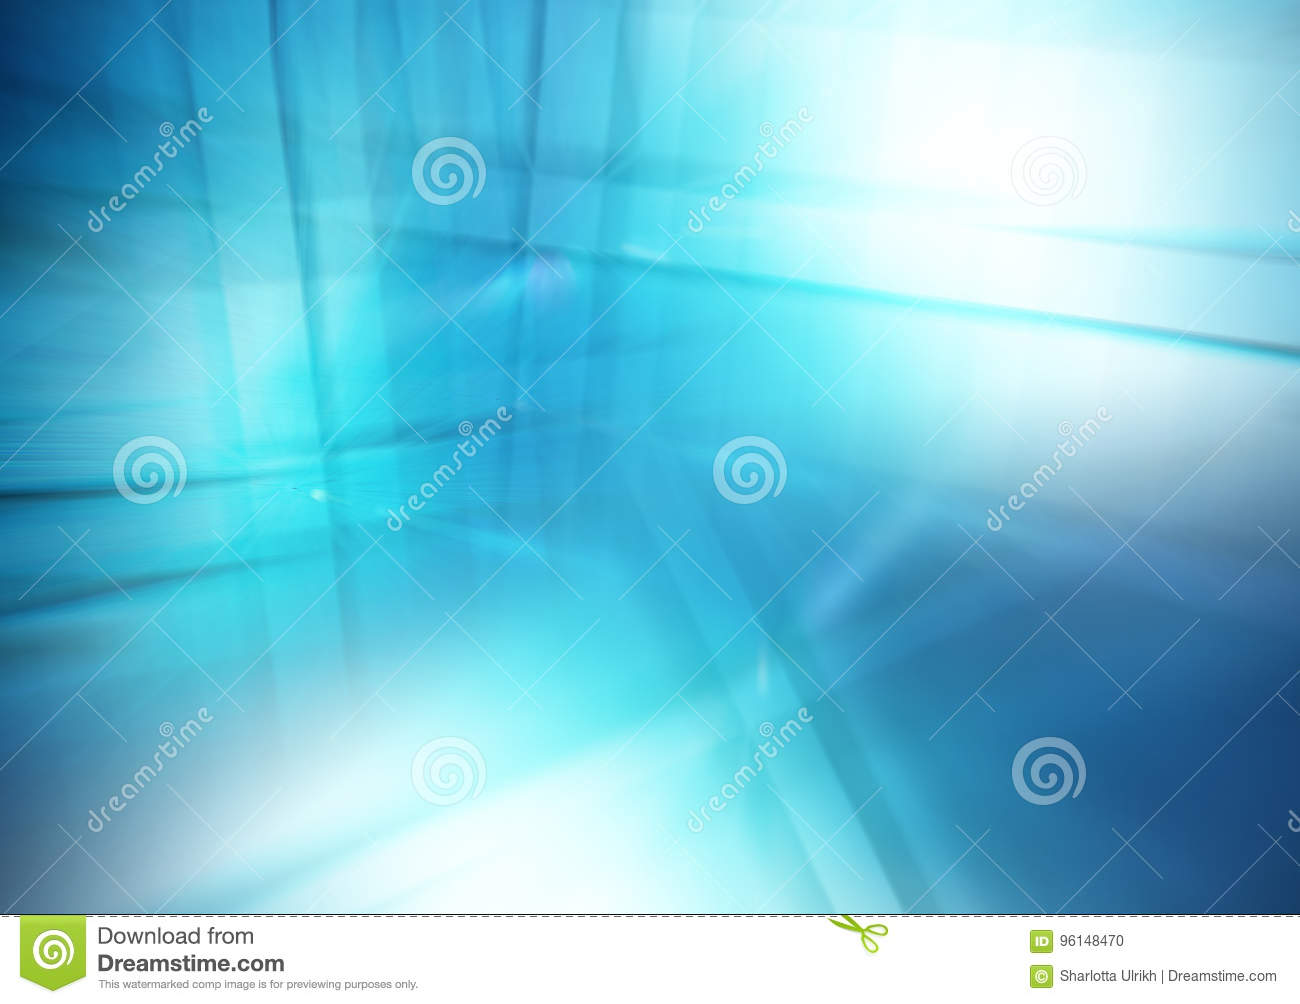 Abstract blue background of lines and reflections, Business theme